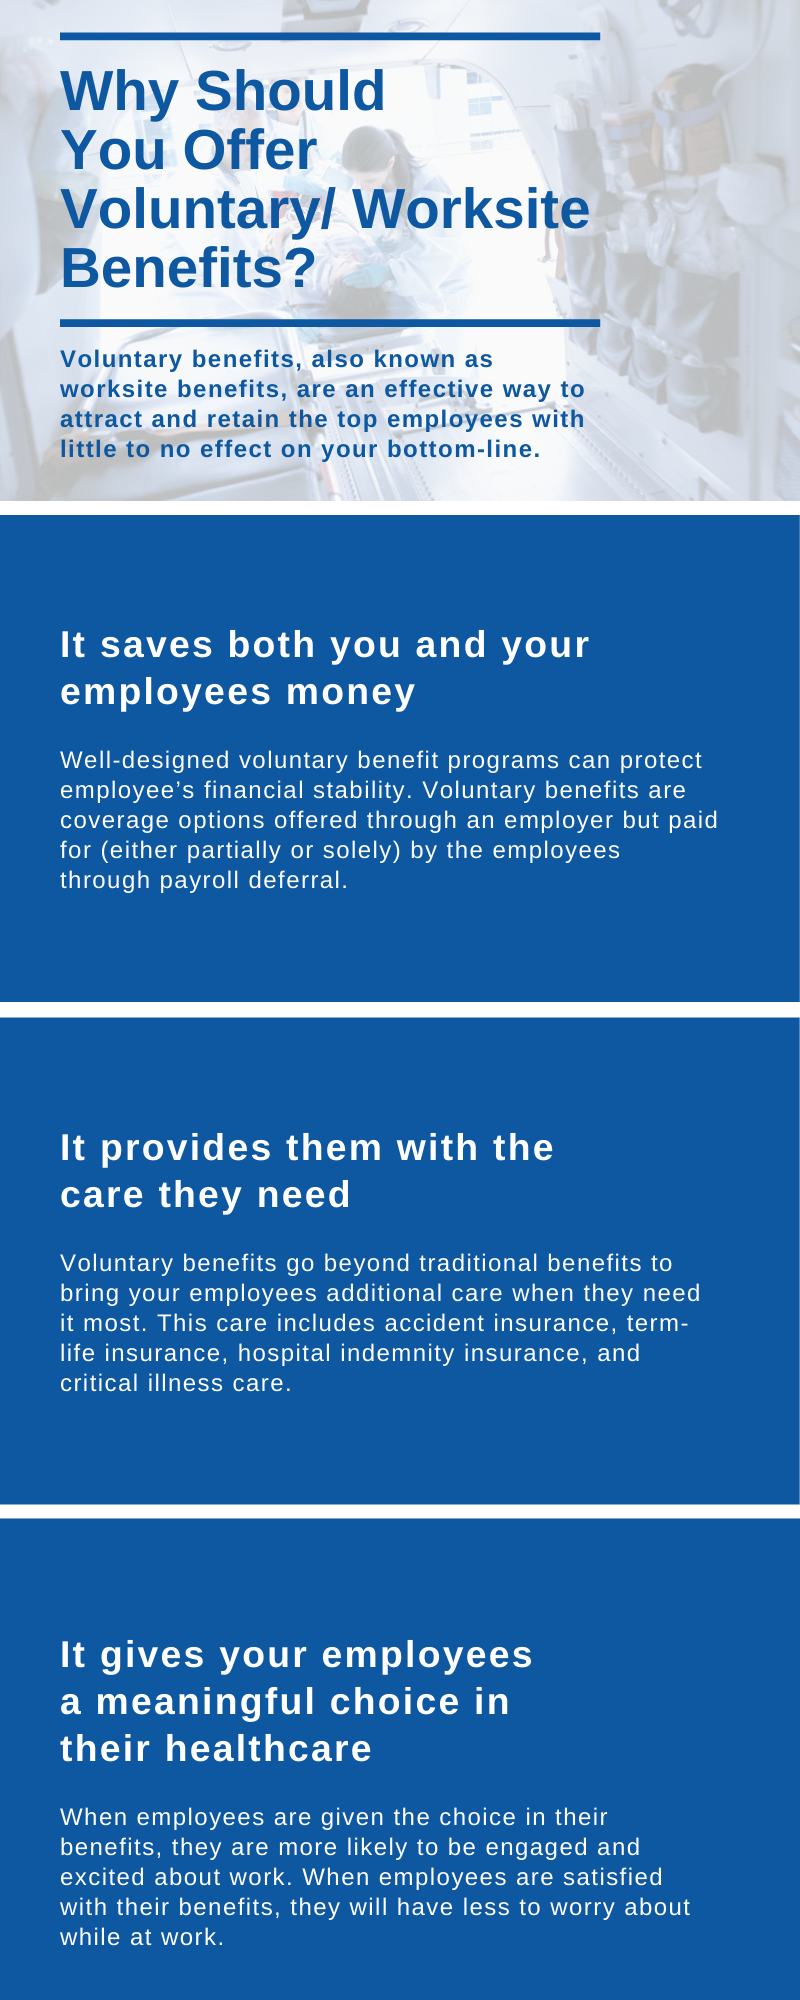 Why Should You Offer Voluntary Benefits?